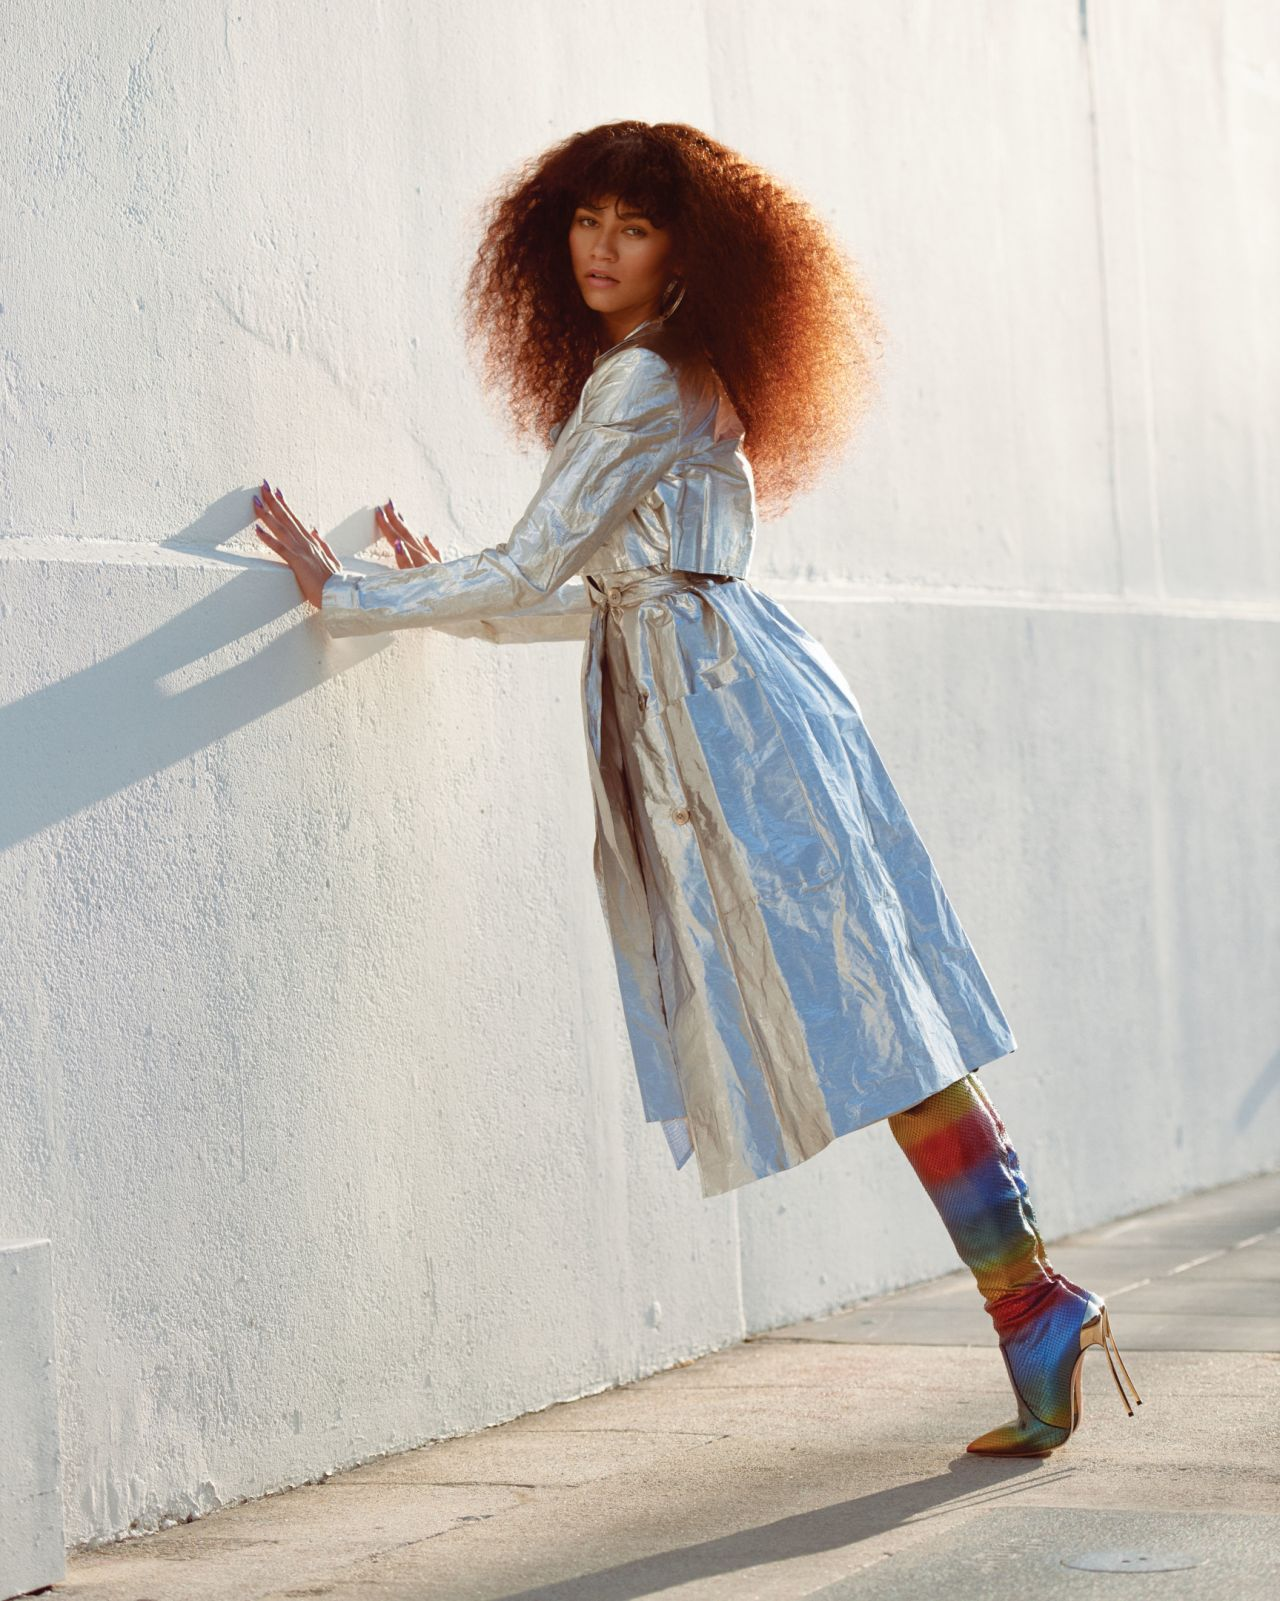 Zendaya Photoshoot For Fashion Magazine Winter 2018 Issue